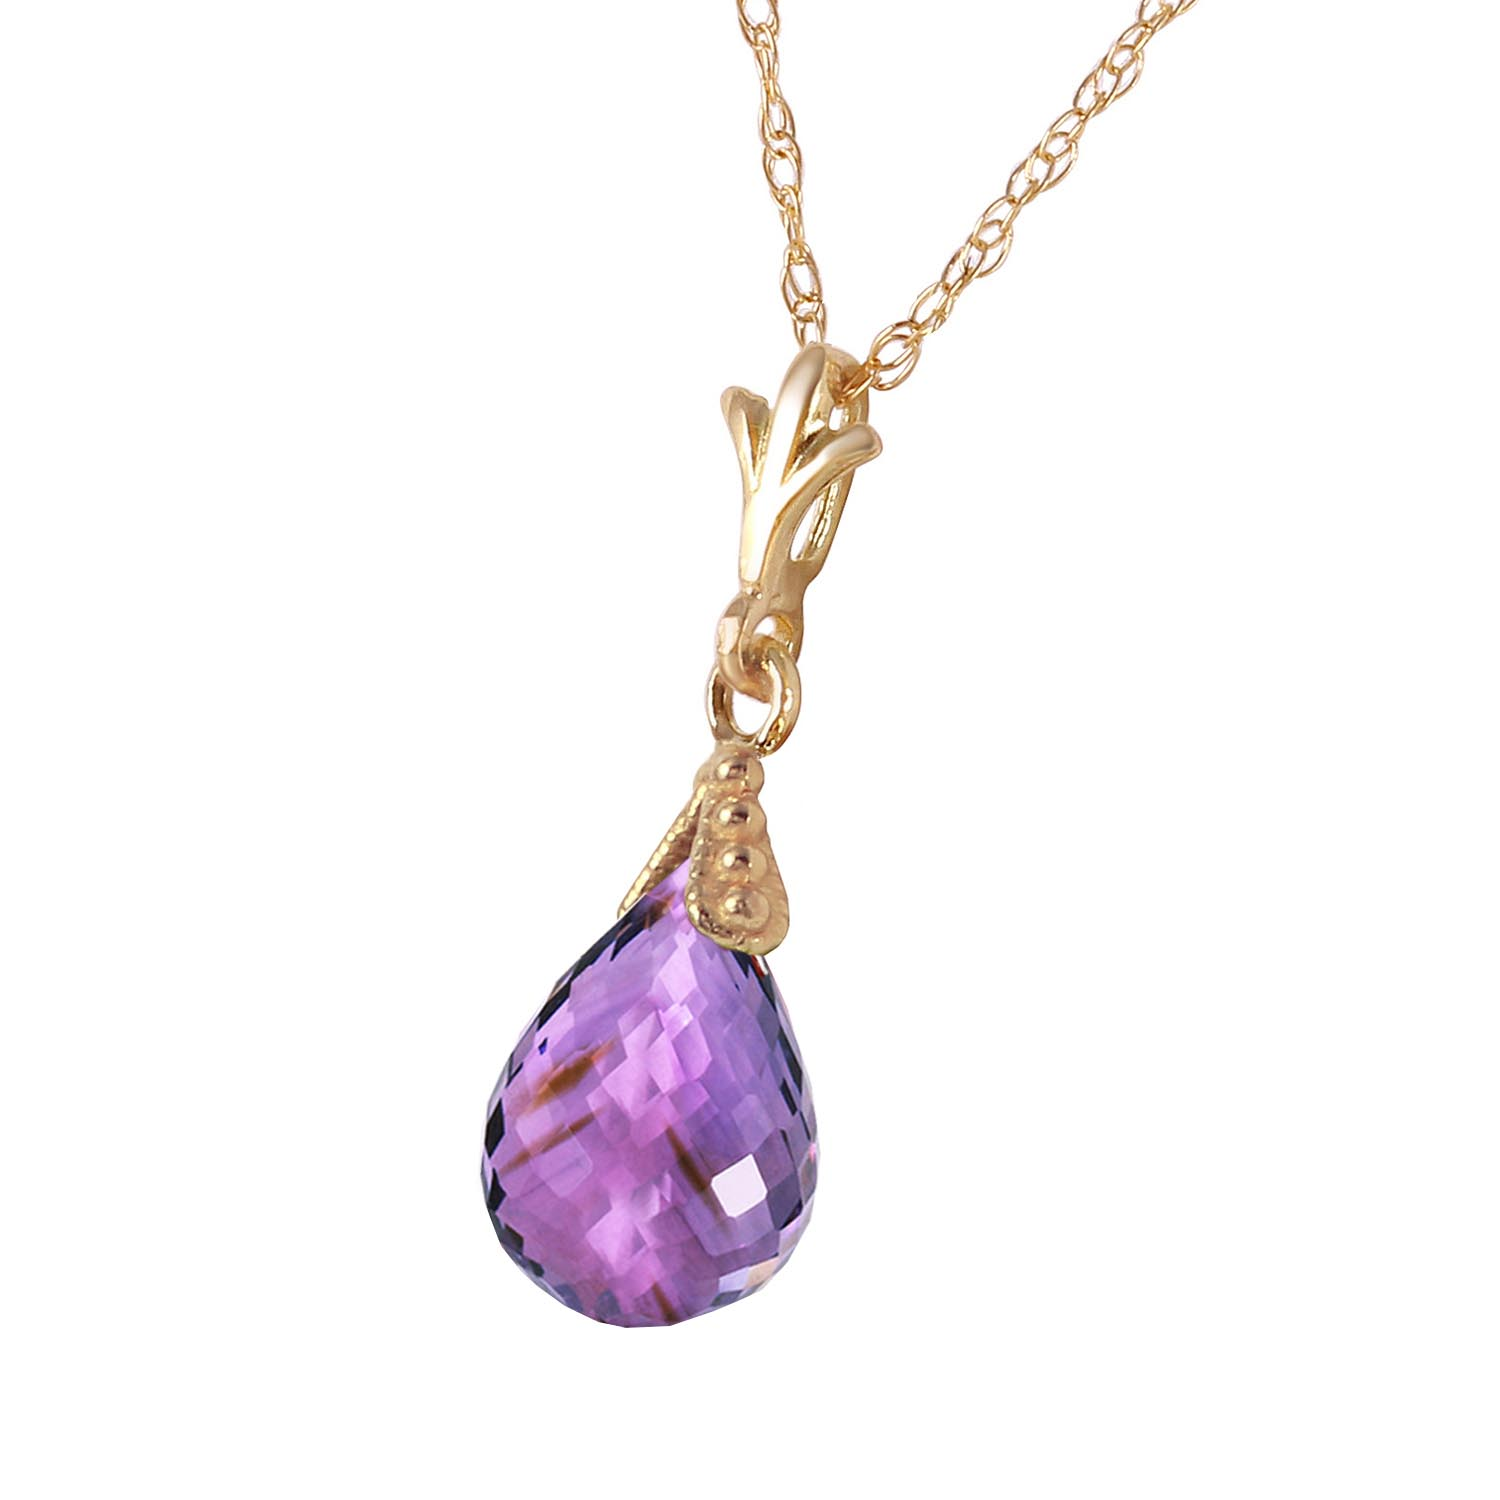 Amethyst Droplet Briolette Pendant Necklace 2.5ct in 9ct Gold